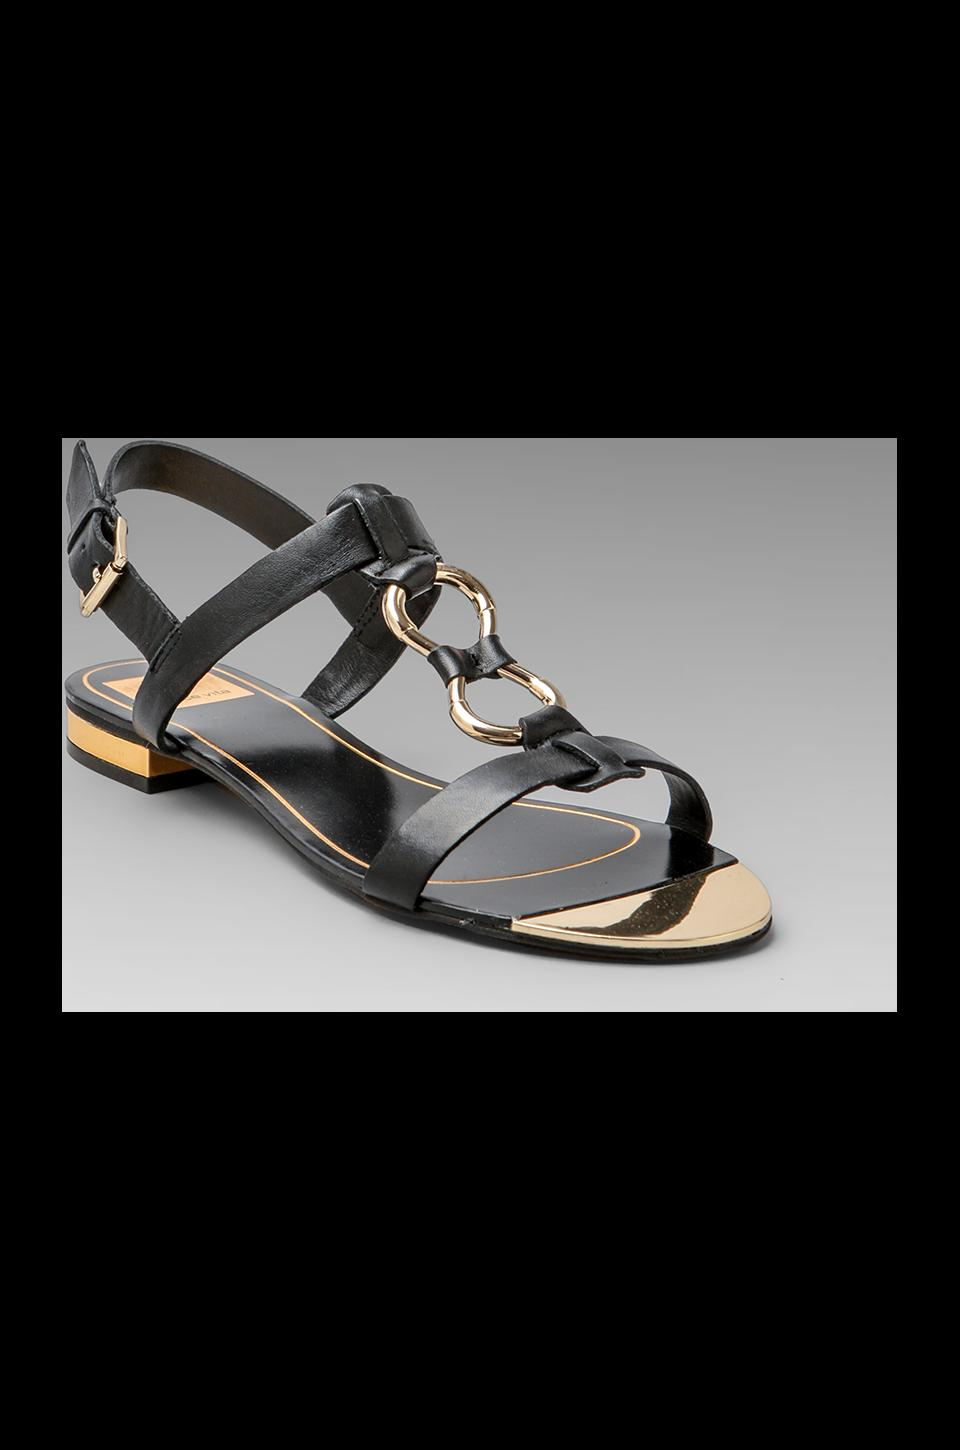 Dolce Vita Dominica Sandal in Black